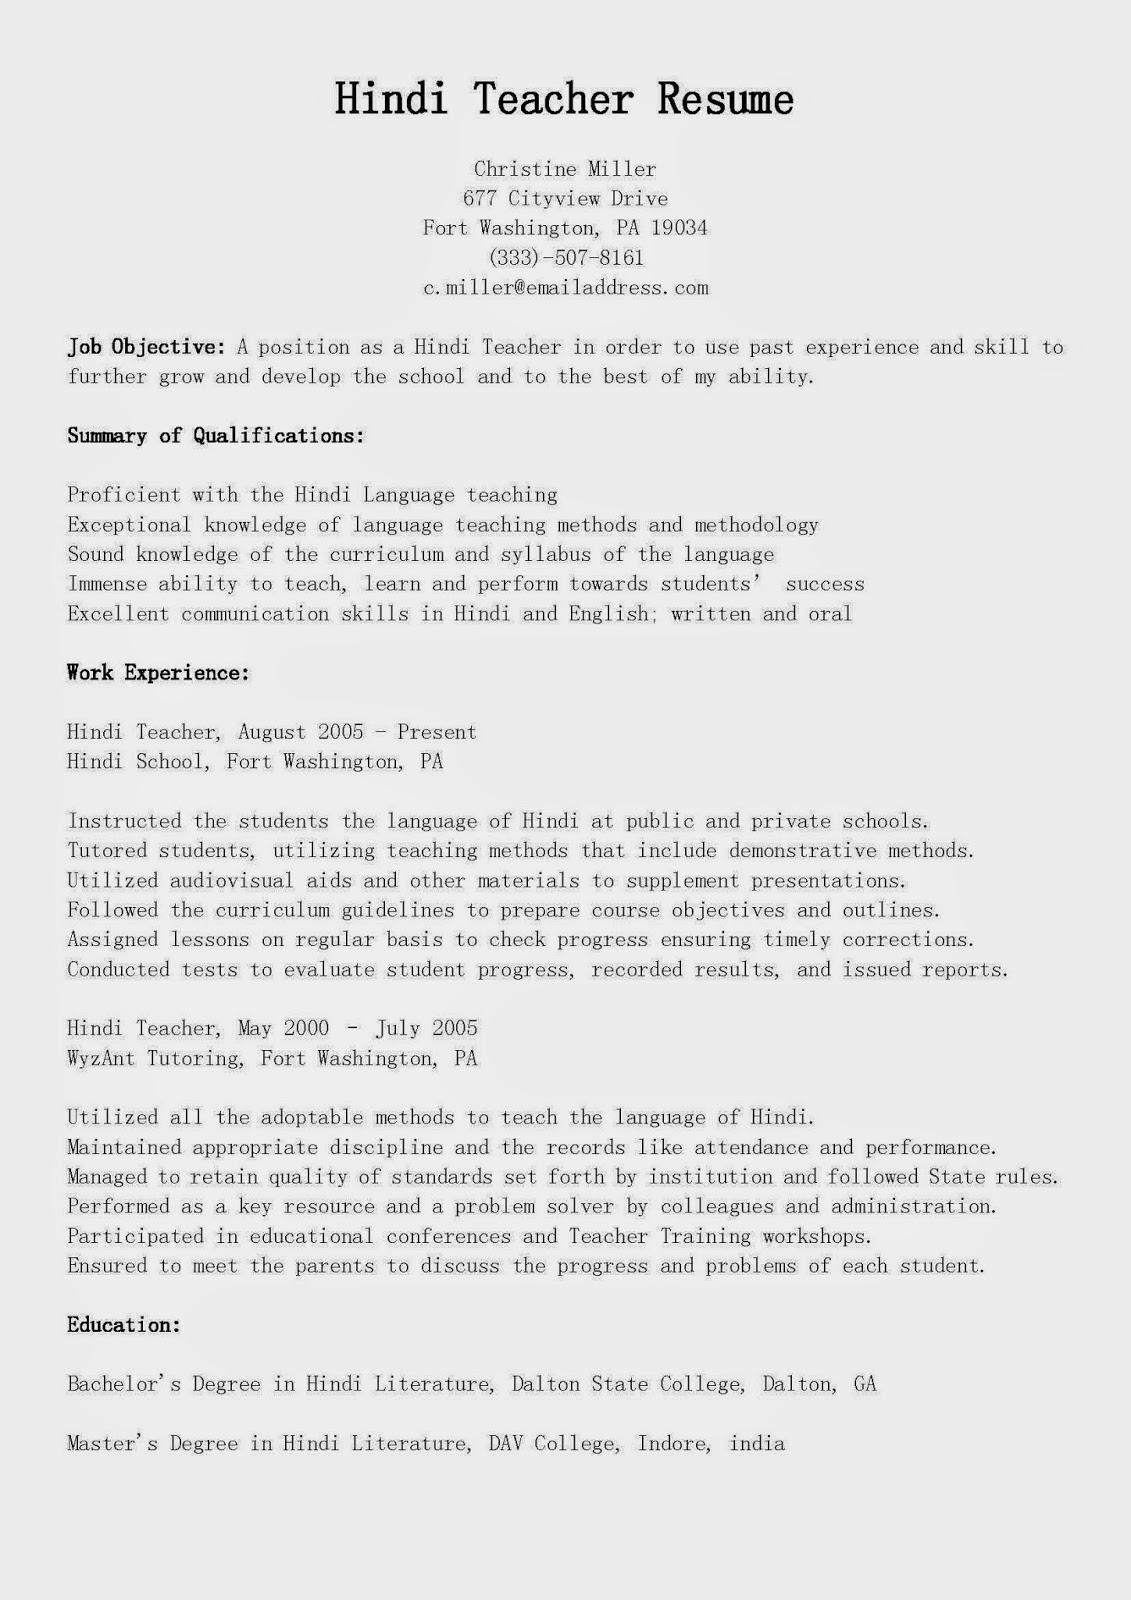 sample format for resumes